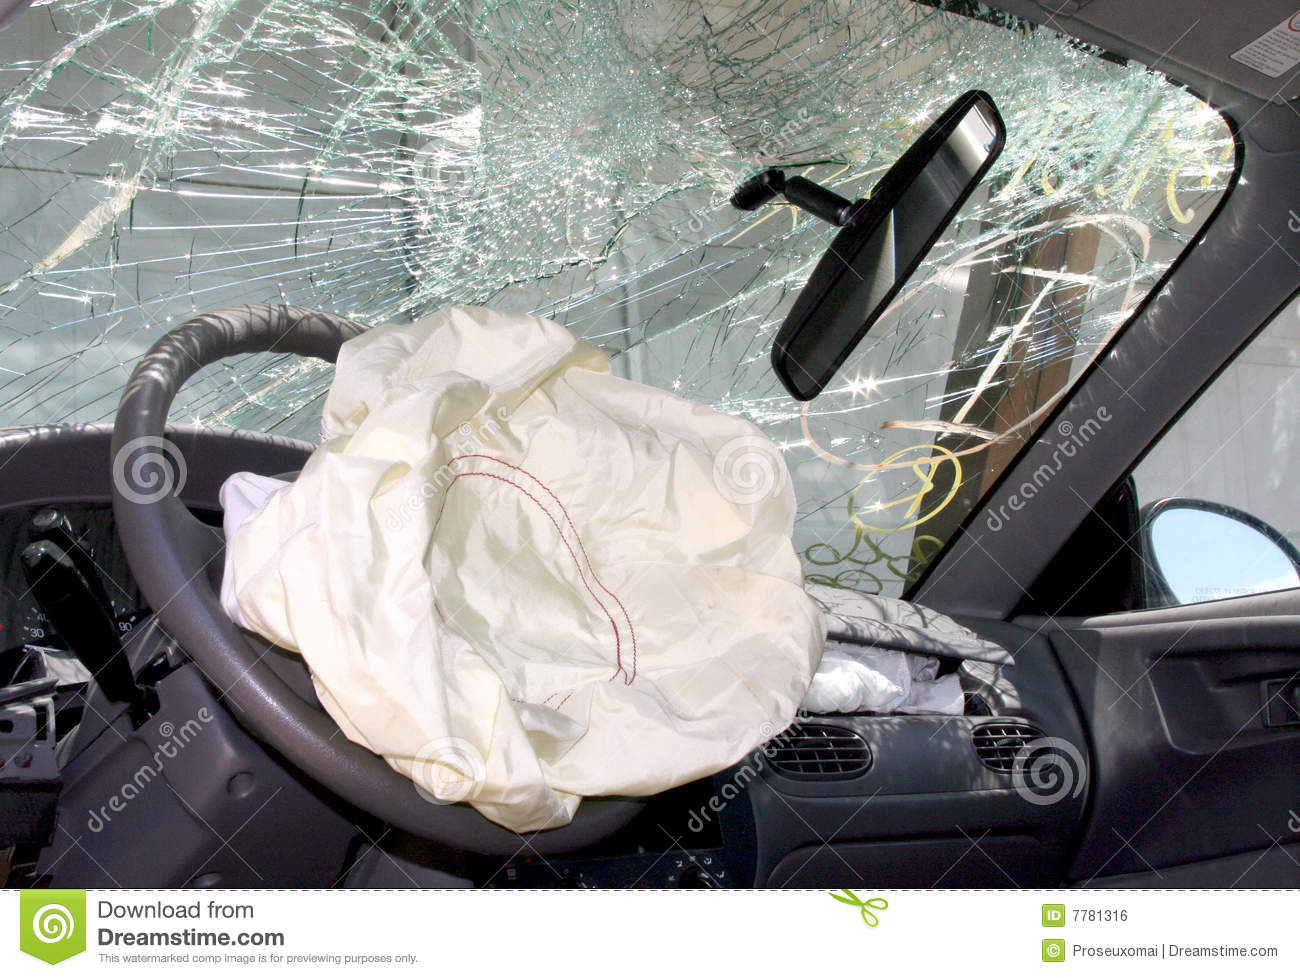 Airbags in cars clipart.